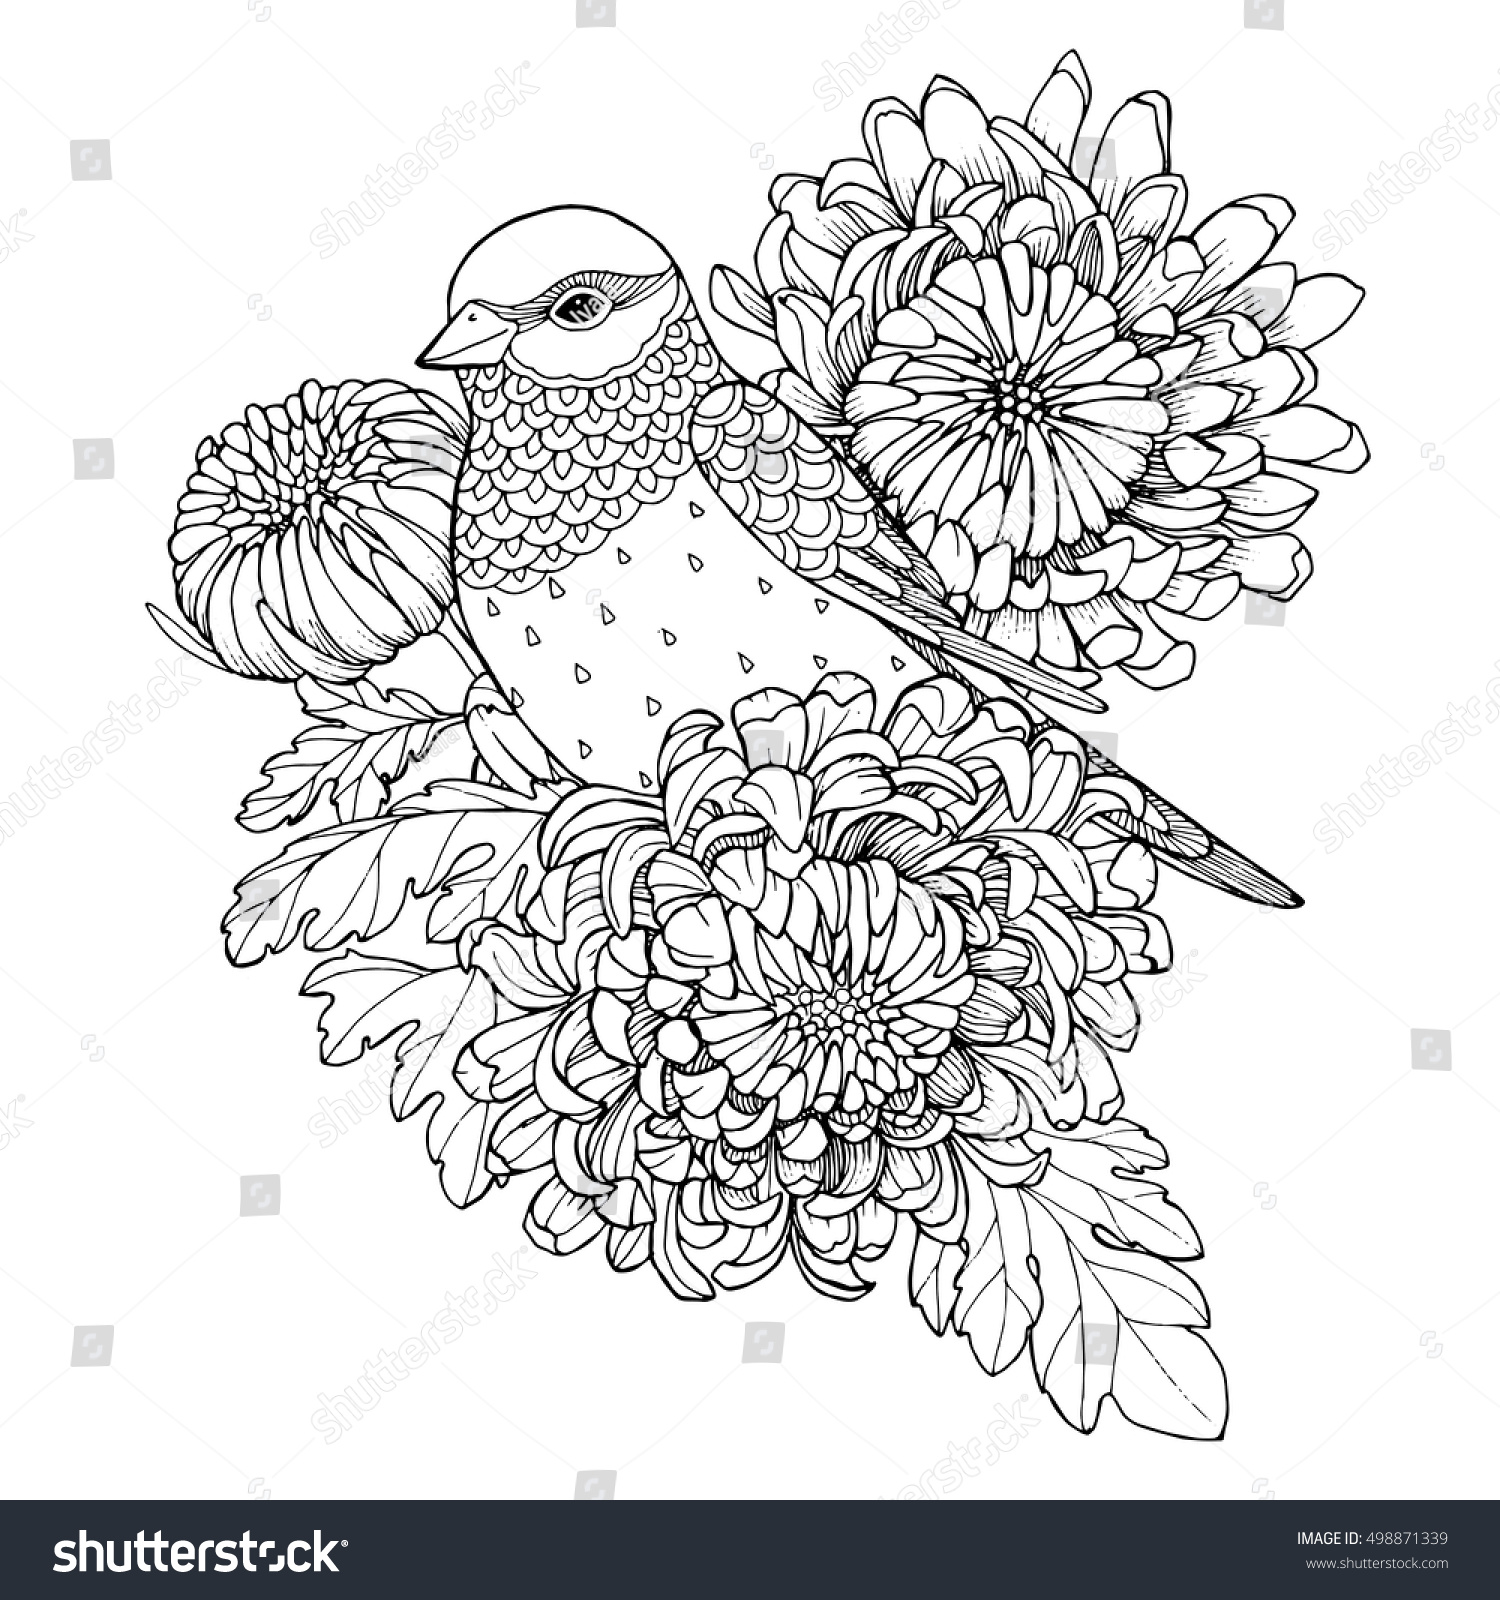 patterned bird sitting on chrysanthemum branch zentangle page for adult coloring book - Chrysanthemum Book Coloring Pages